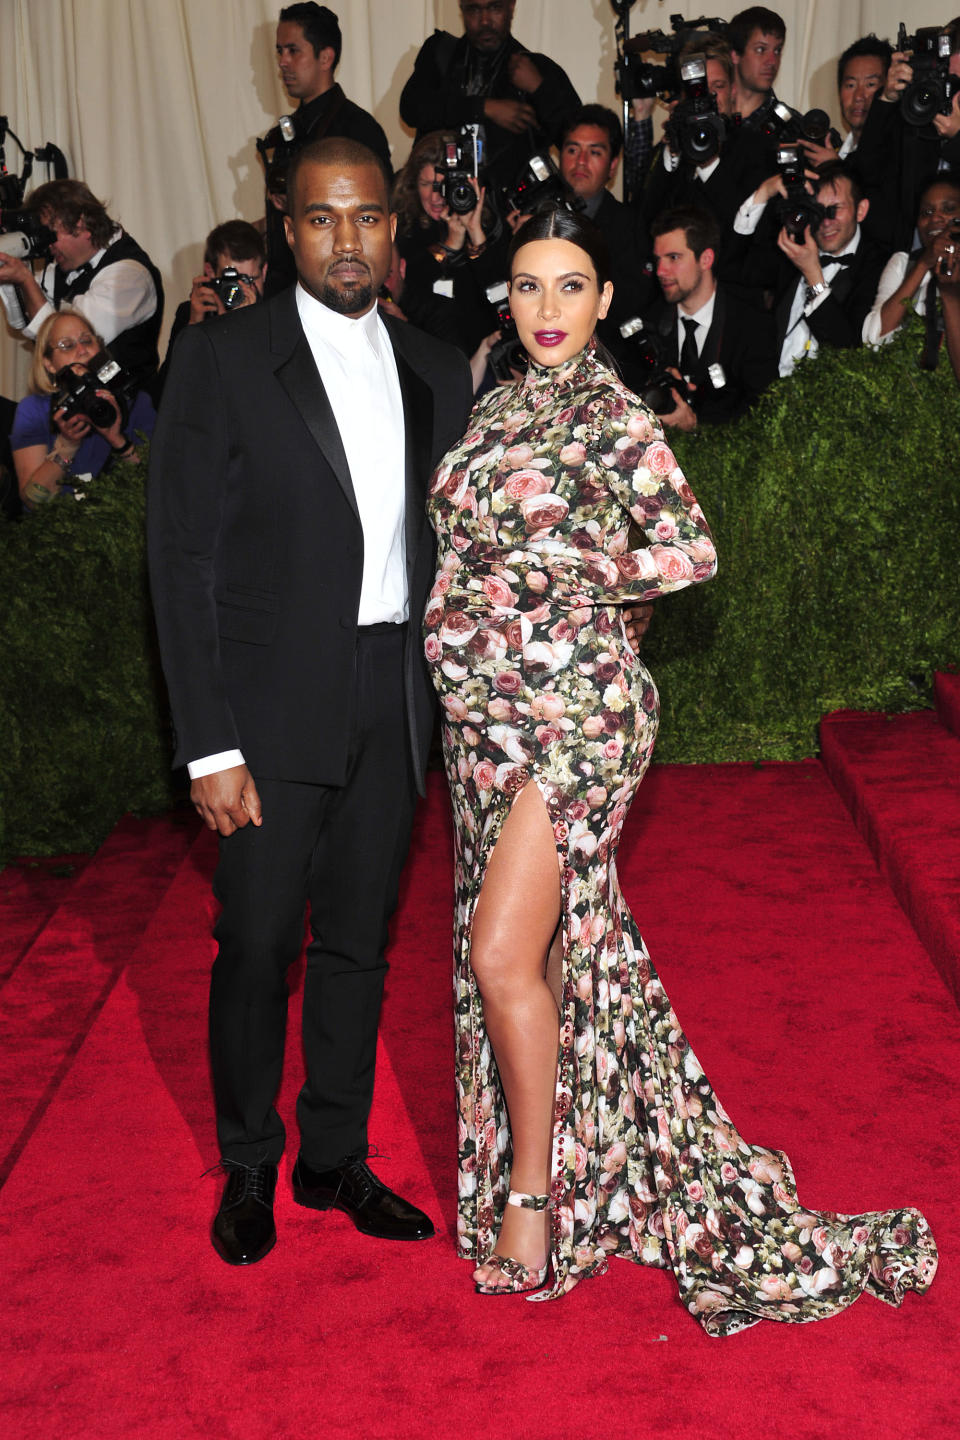 """Kanye West and Kim Kardashian attends The Metropolitan Museum of Art's Costume Institute benefit celebrating """"PUNK: Chaos to Couture"""" on Monday May 6, 2013 in New York. (Photo by Charles Sykes/Invision/AP)"""